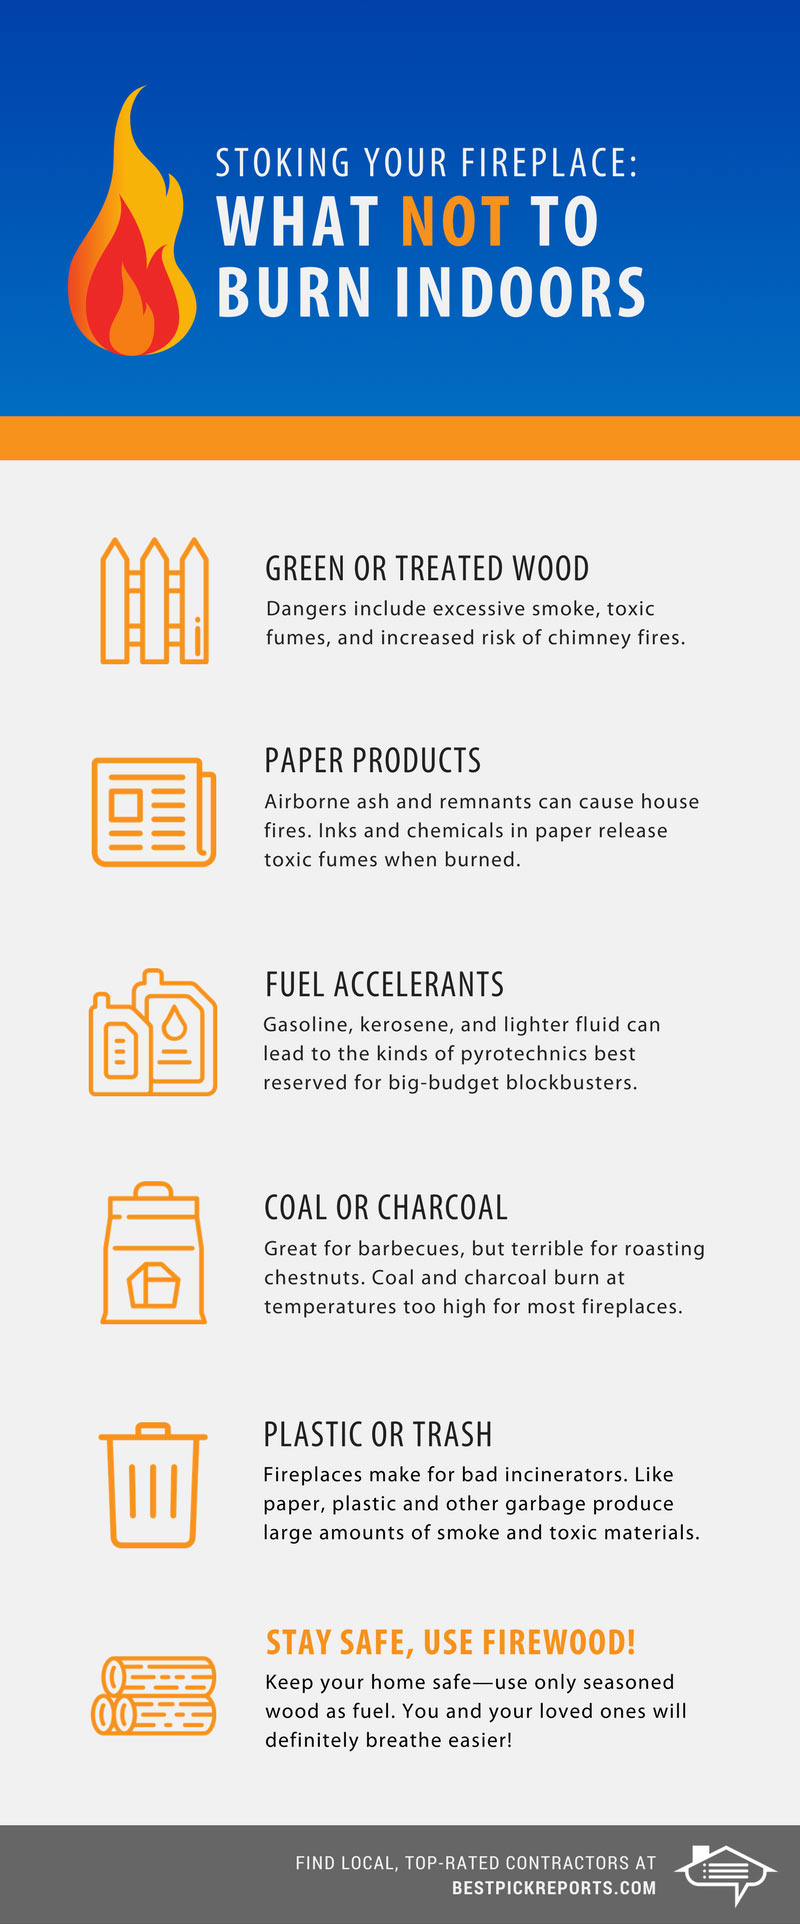 Infographic on what not to burn indoors